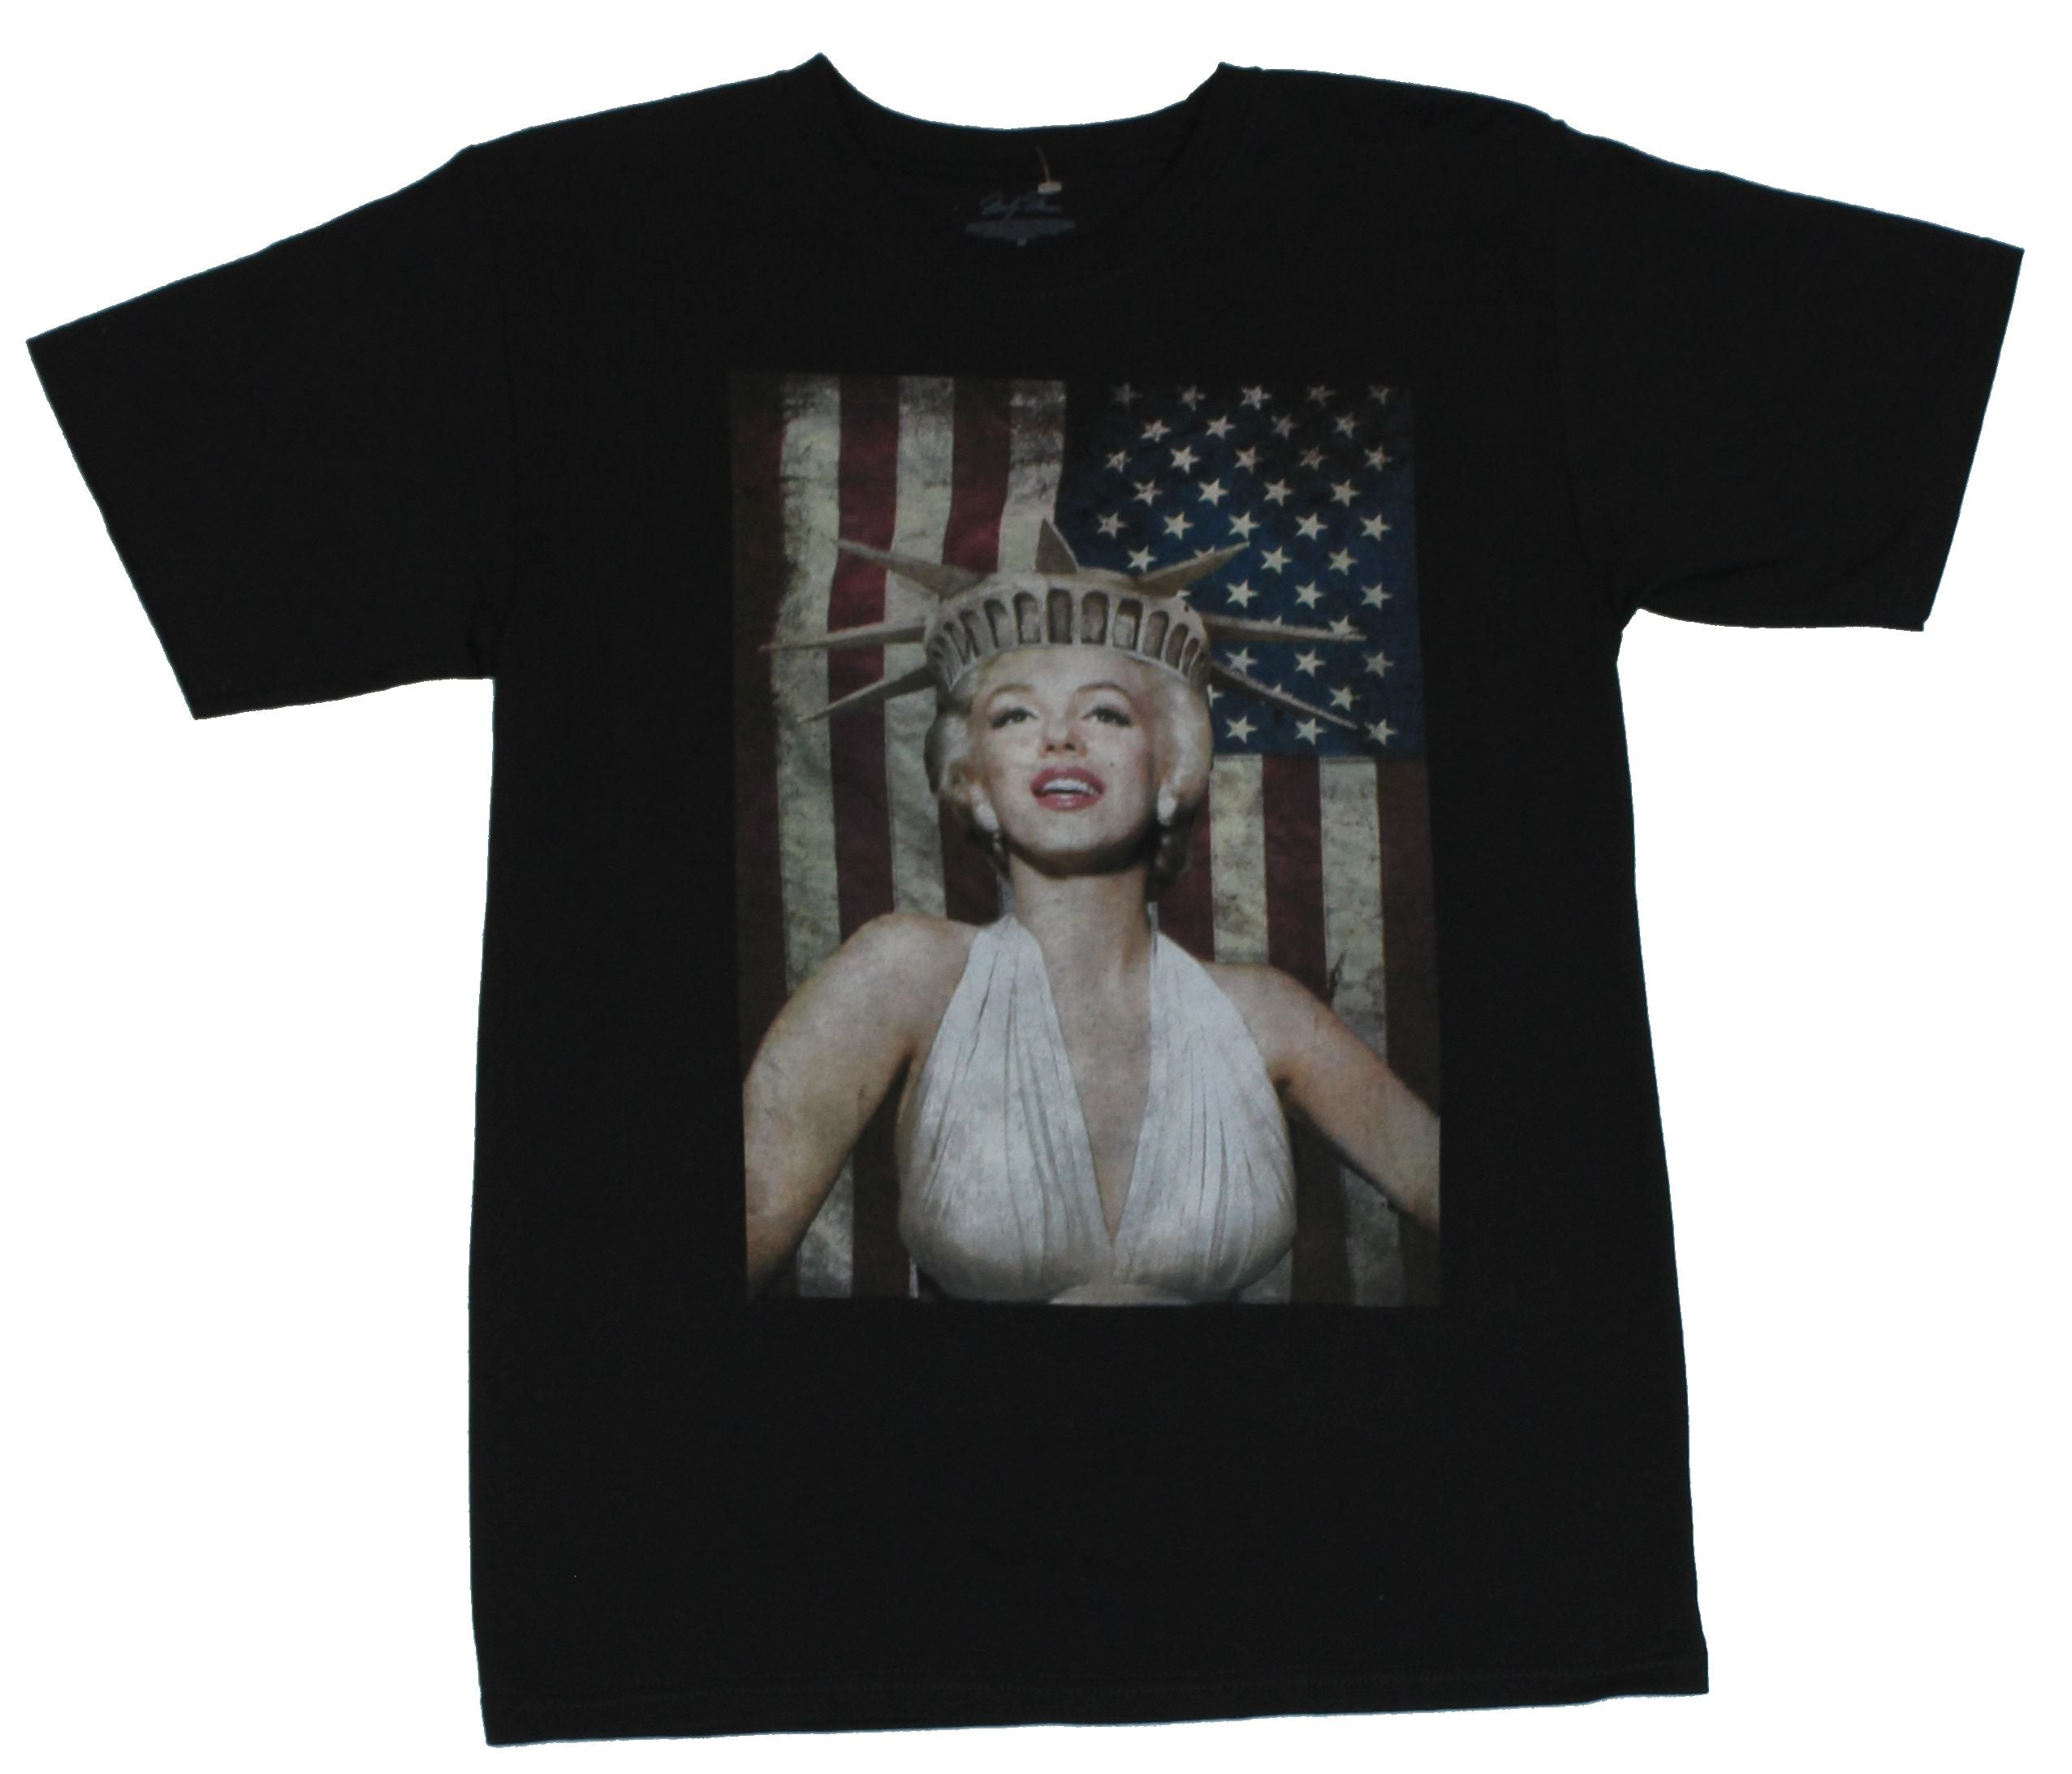 Marylin Monroe Mens T-Shirt - Distressed Statue of Lberty and Flag Image